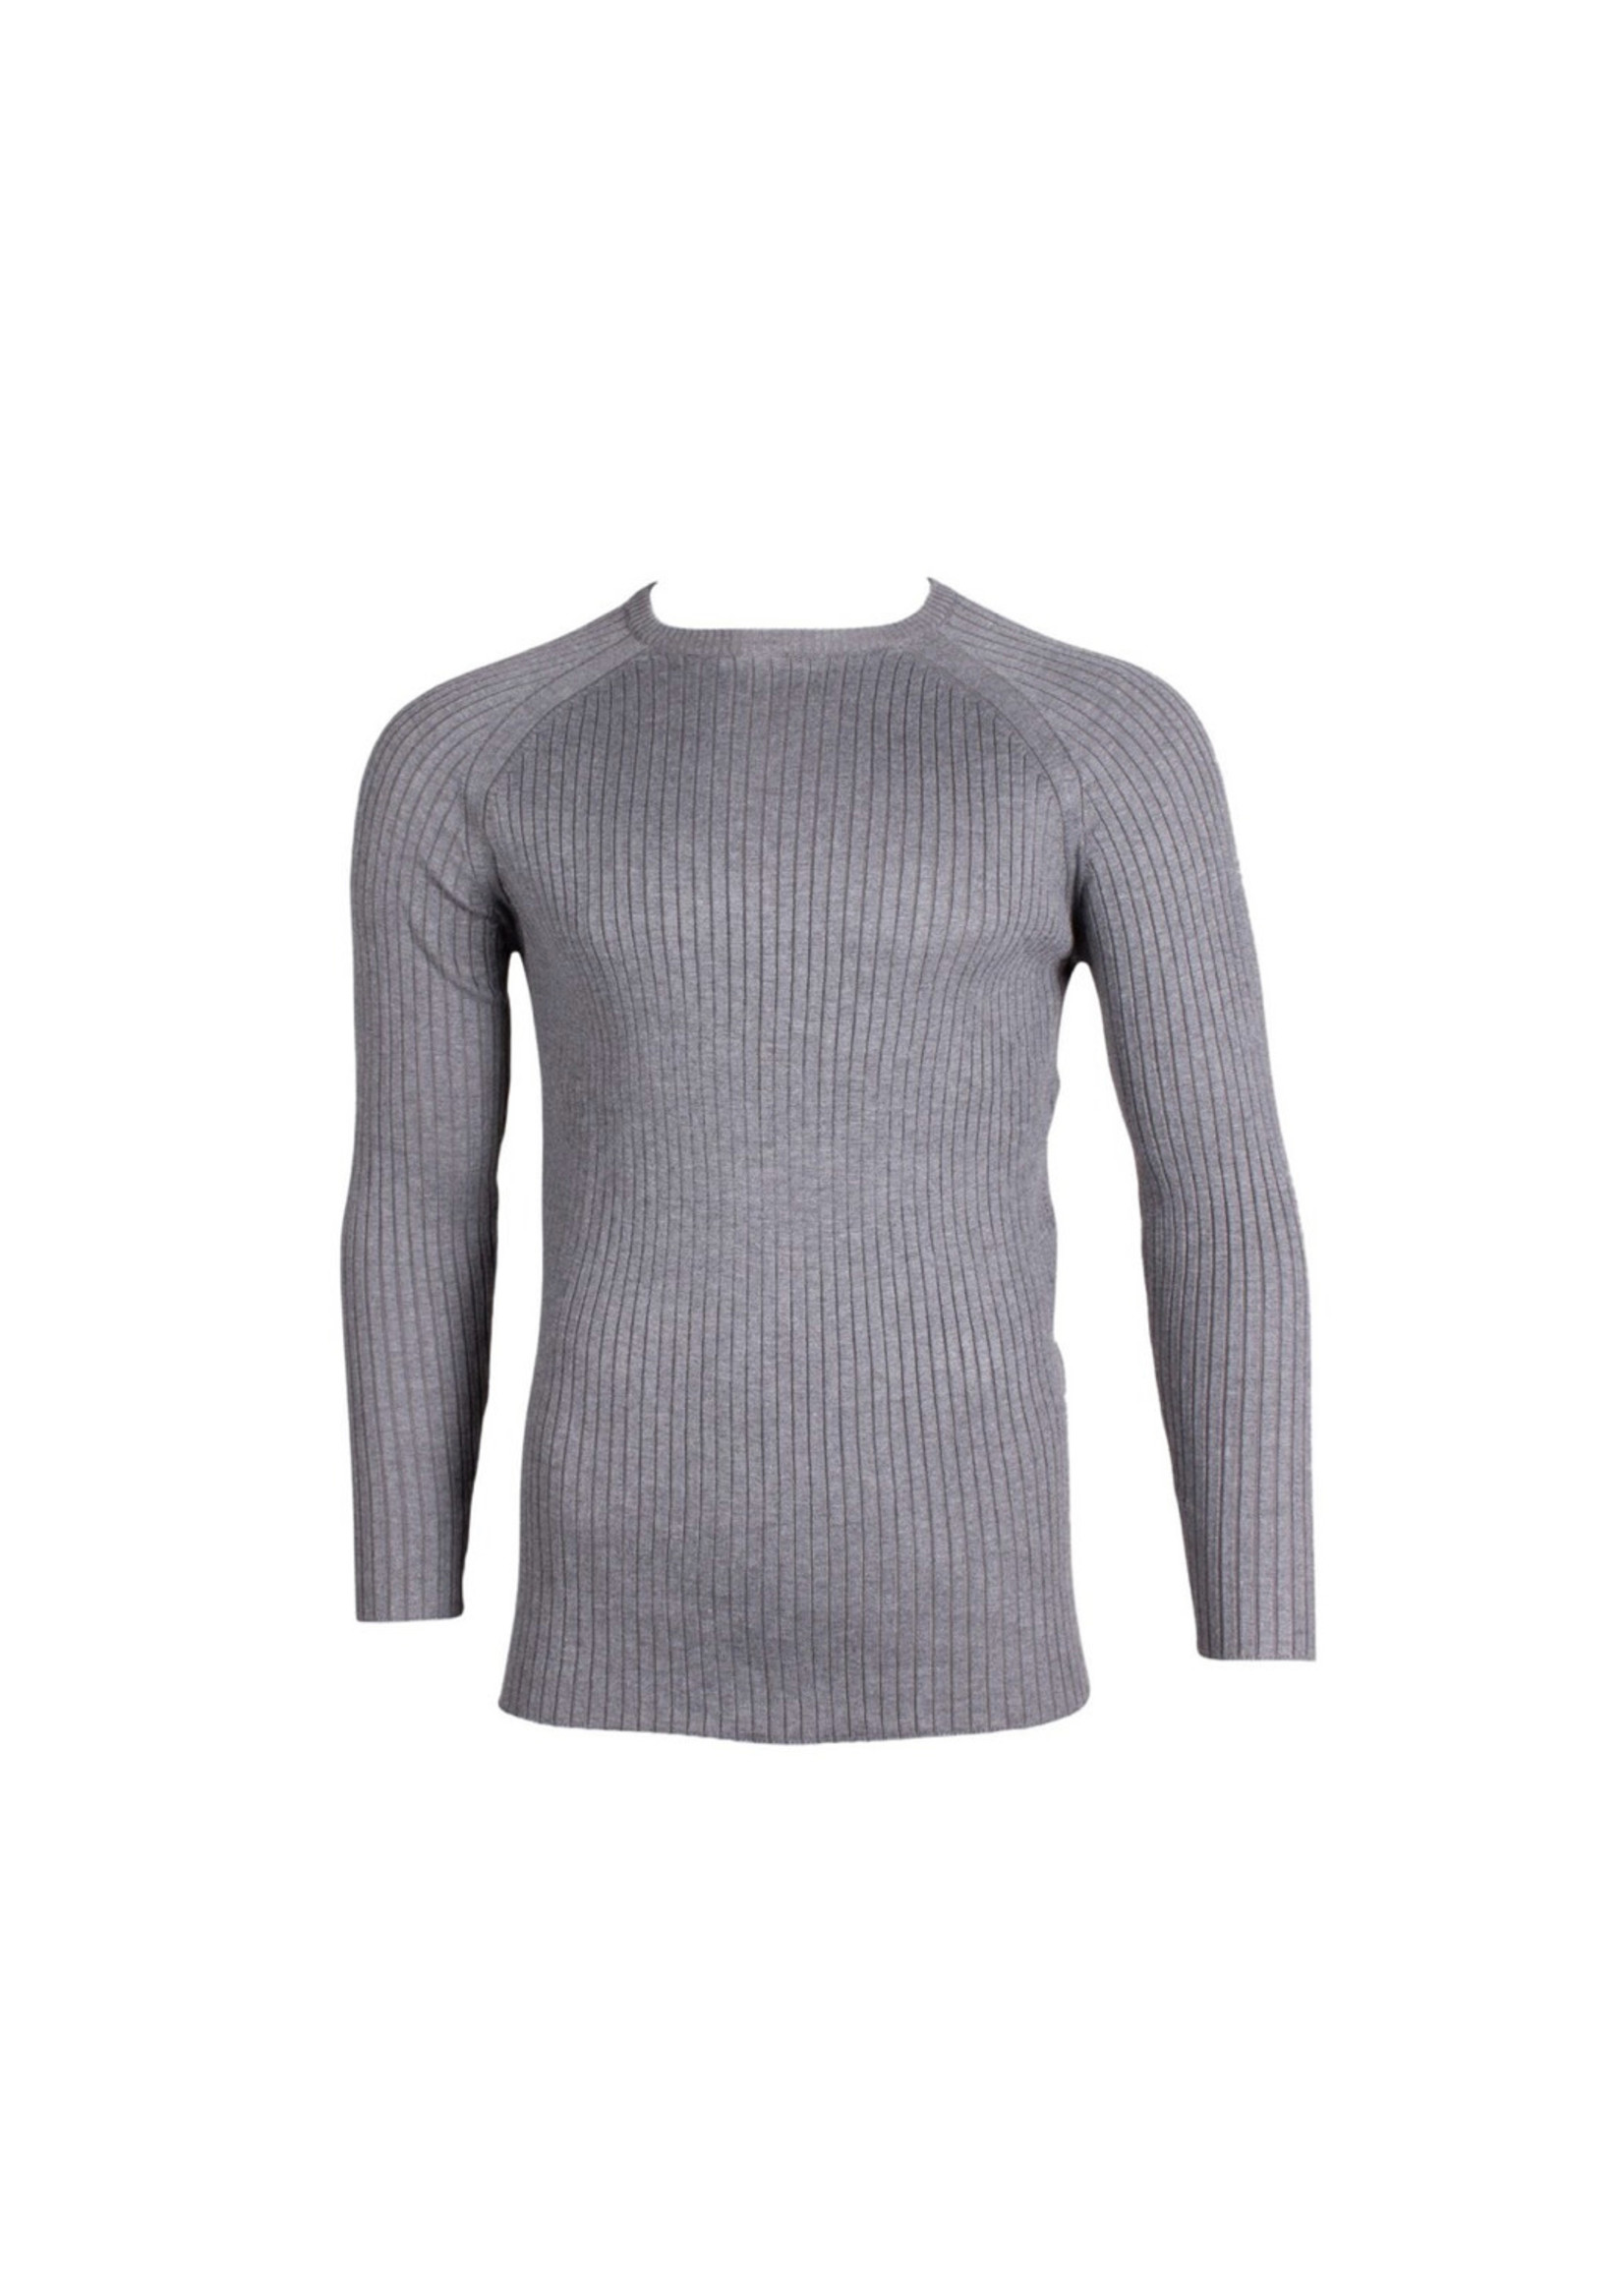 RADICAL Radical Giorgio Knit - Dark Grey